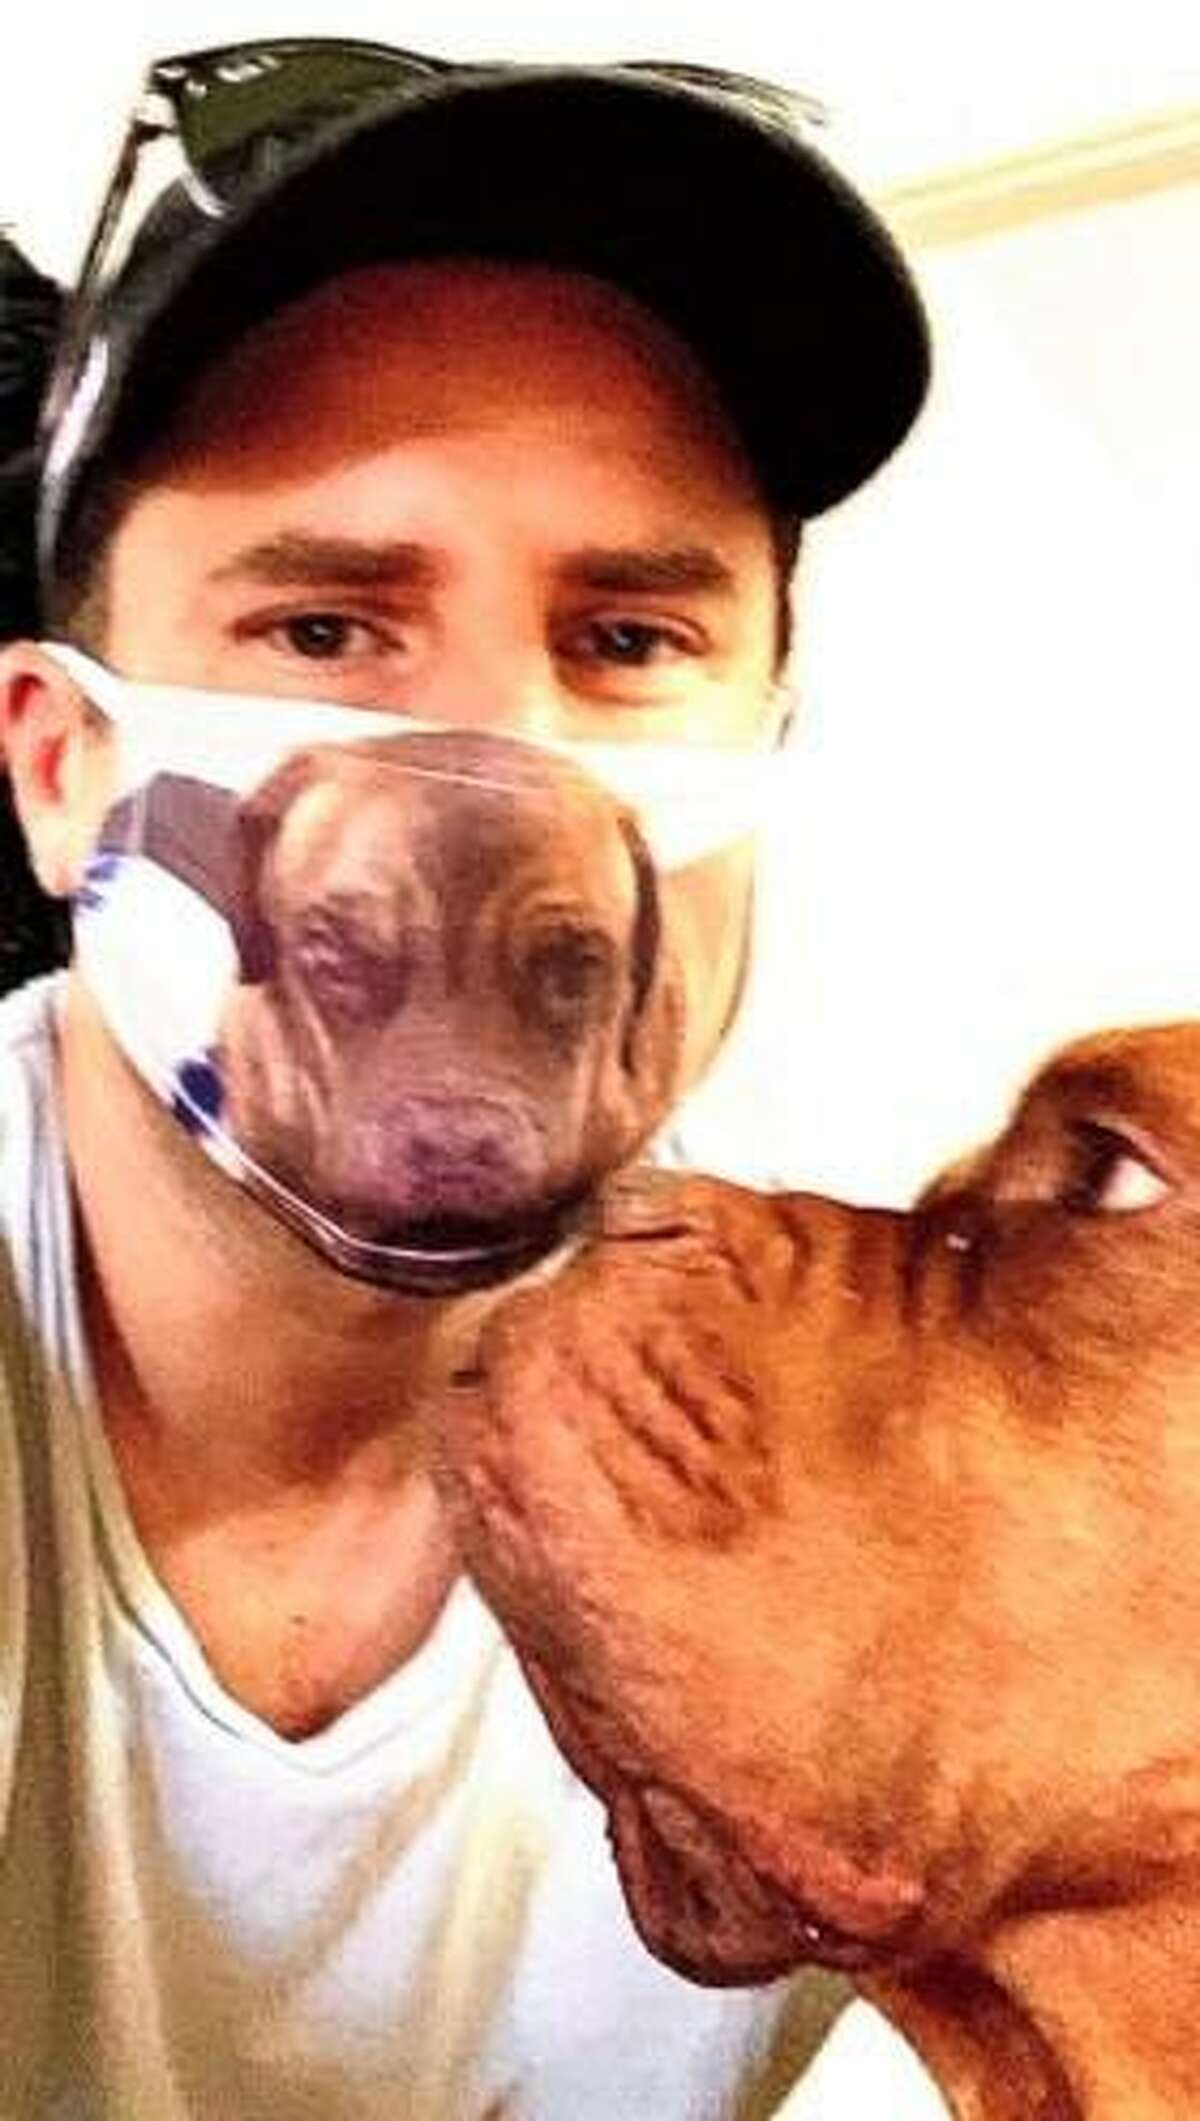 The quarantining was made more tolerable for James Roday, thanks to his rescue dog, Claude, and the mask he had made bearing his likeness.